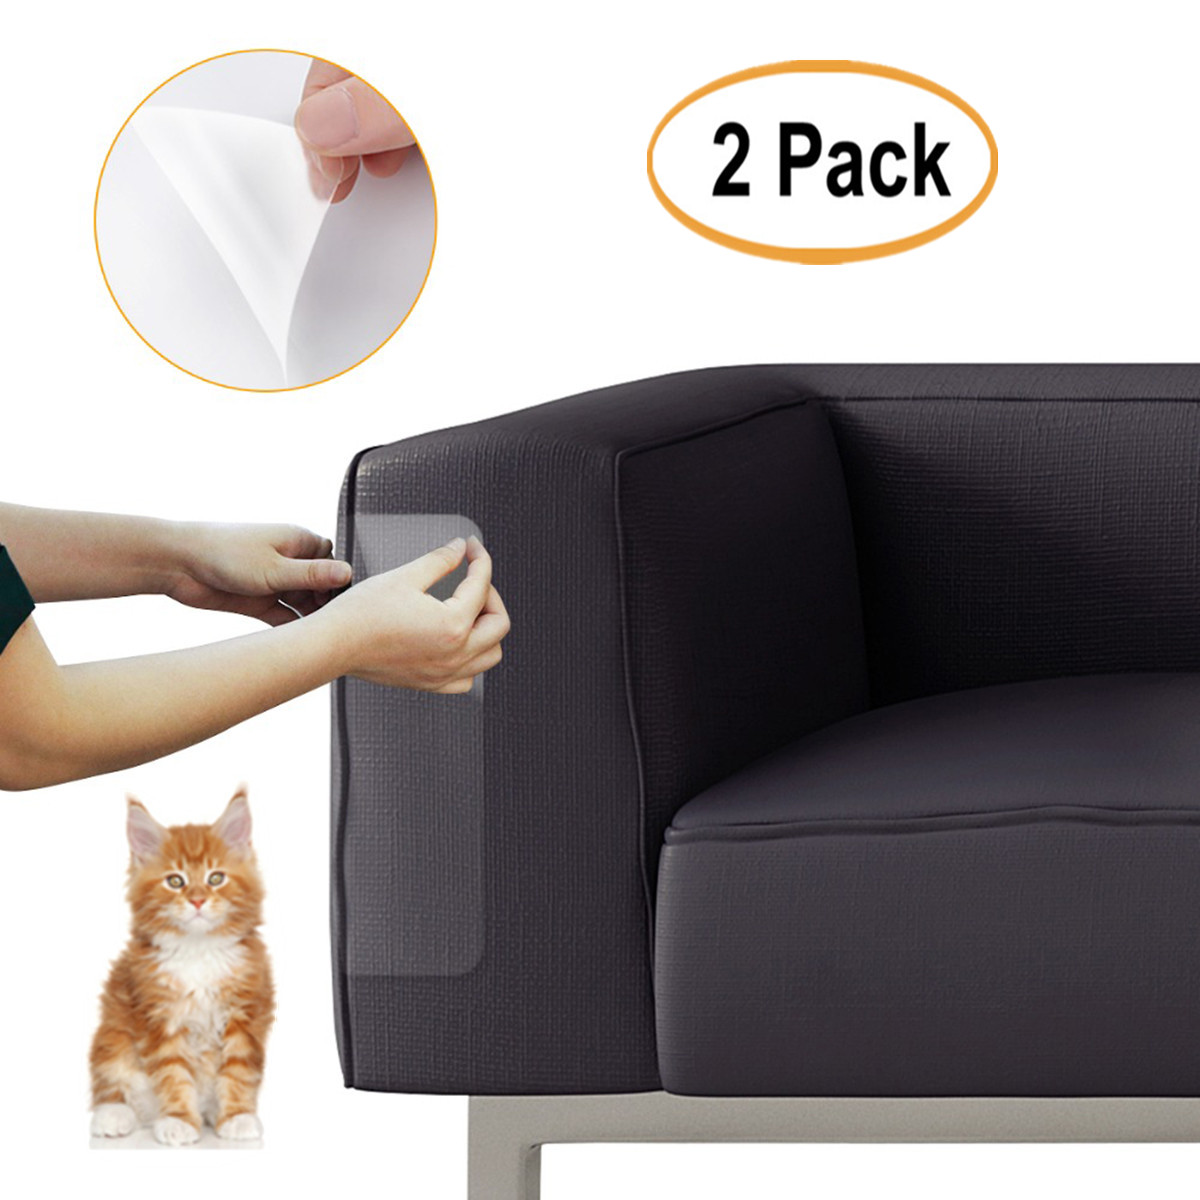 Sensational 2Pcs Clear Pet Couch Protector Guards For Protecting Your Furniture Stops Scratching Cats Chair And Sofa Deterrent Guards Corners Scratch Cover Ibusinesslaw Wood Chair Design Ideas Ibusinesslaworg